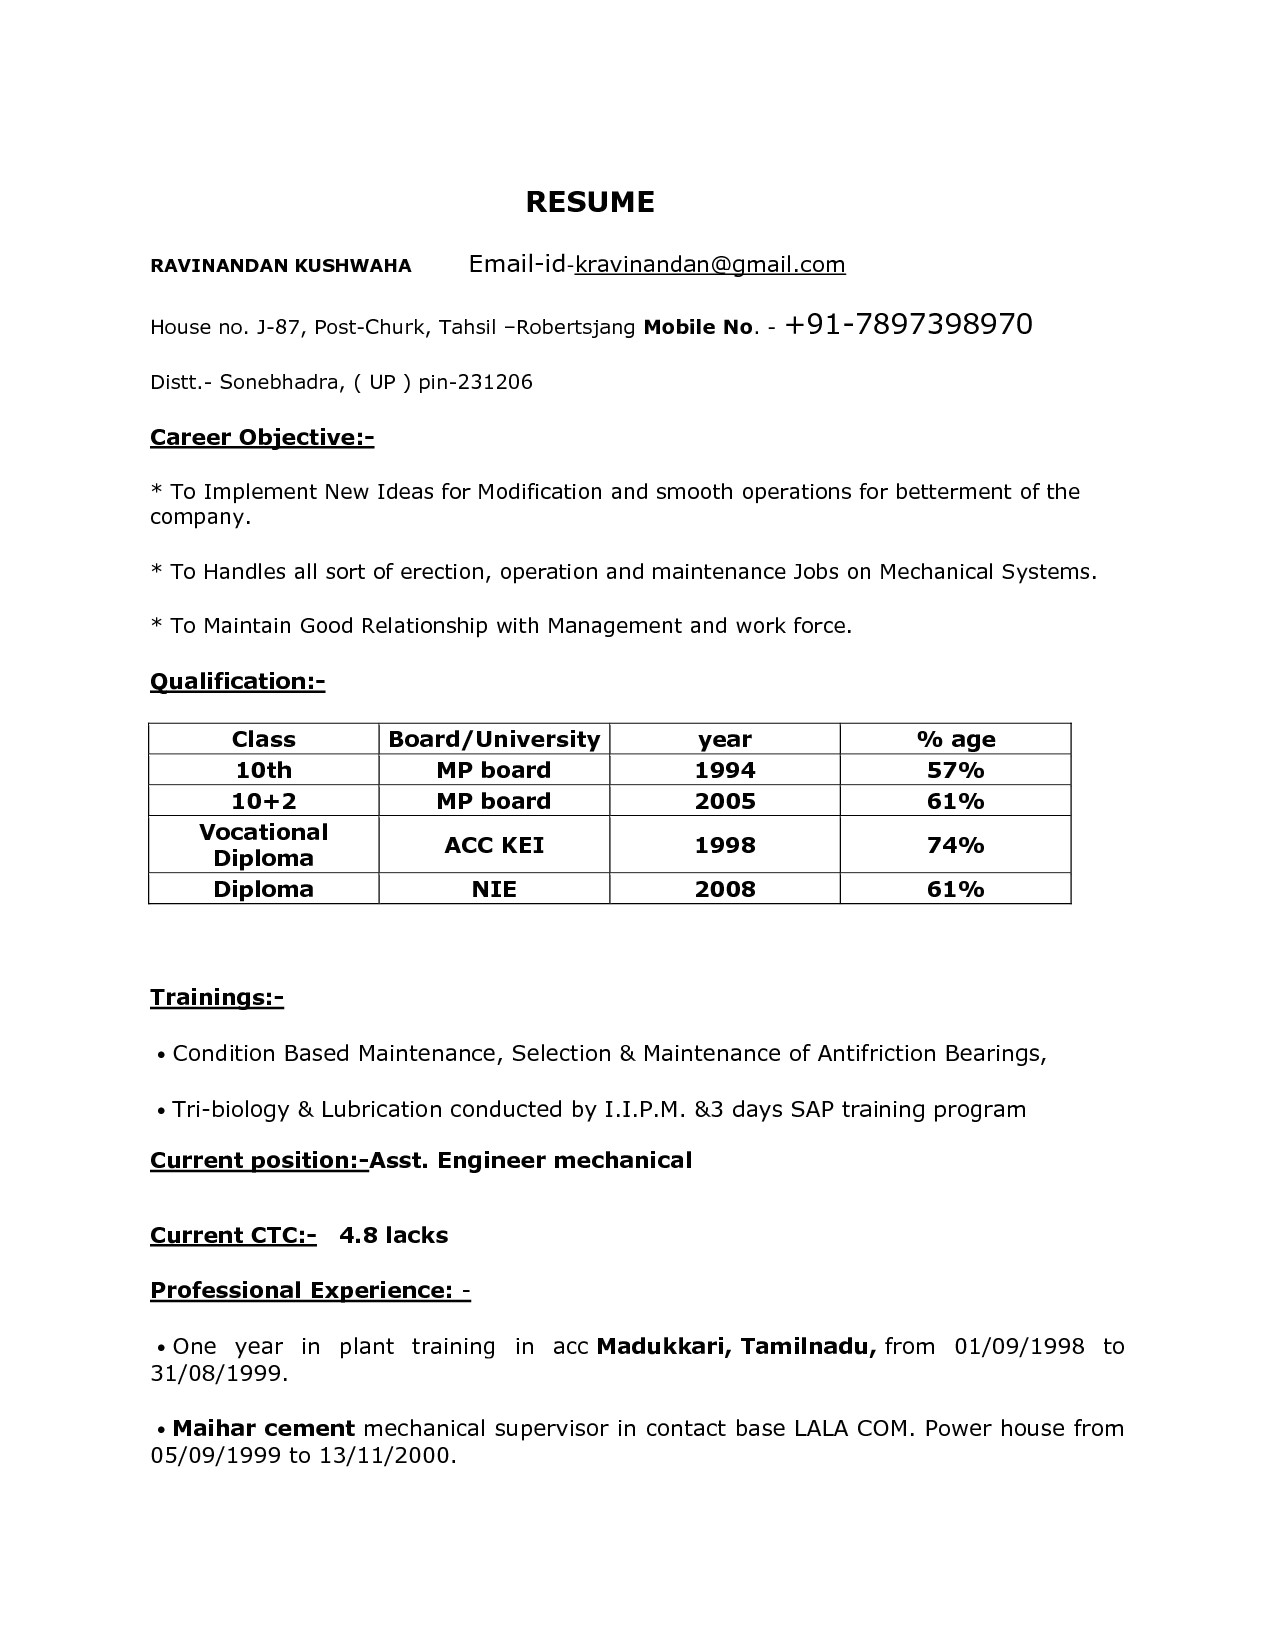 sample resume format for diploma mechanical engineers